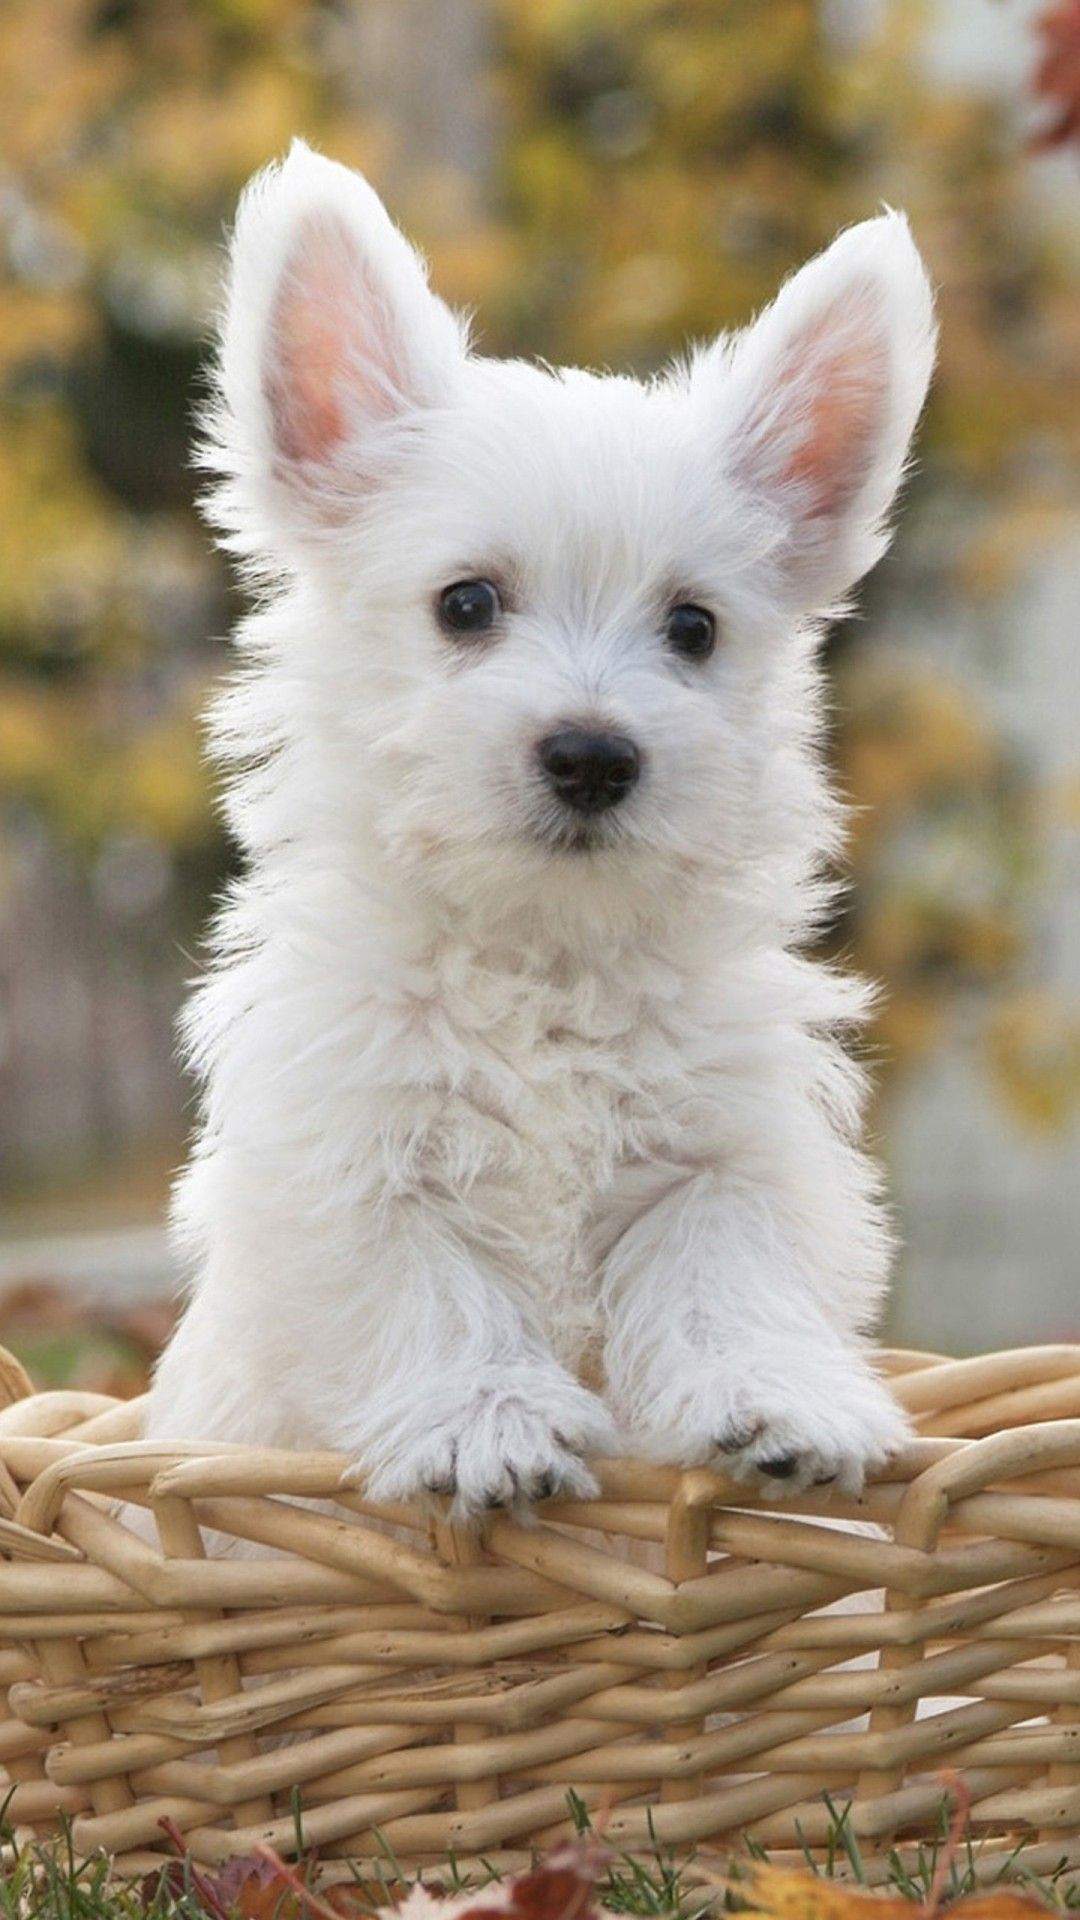 55 Cute Dog Android Iphone Desktop Hd Backgrounds Wallpapers 1080p 4k 1080x1920 2020